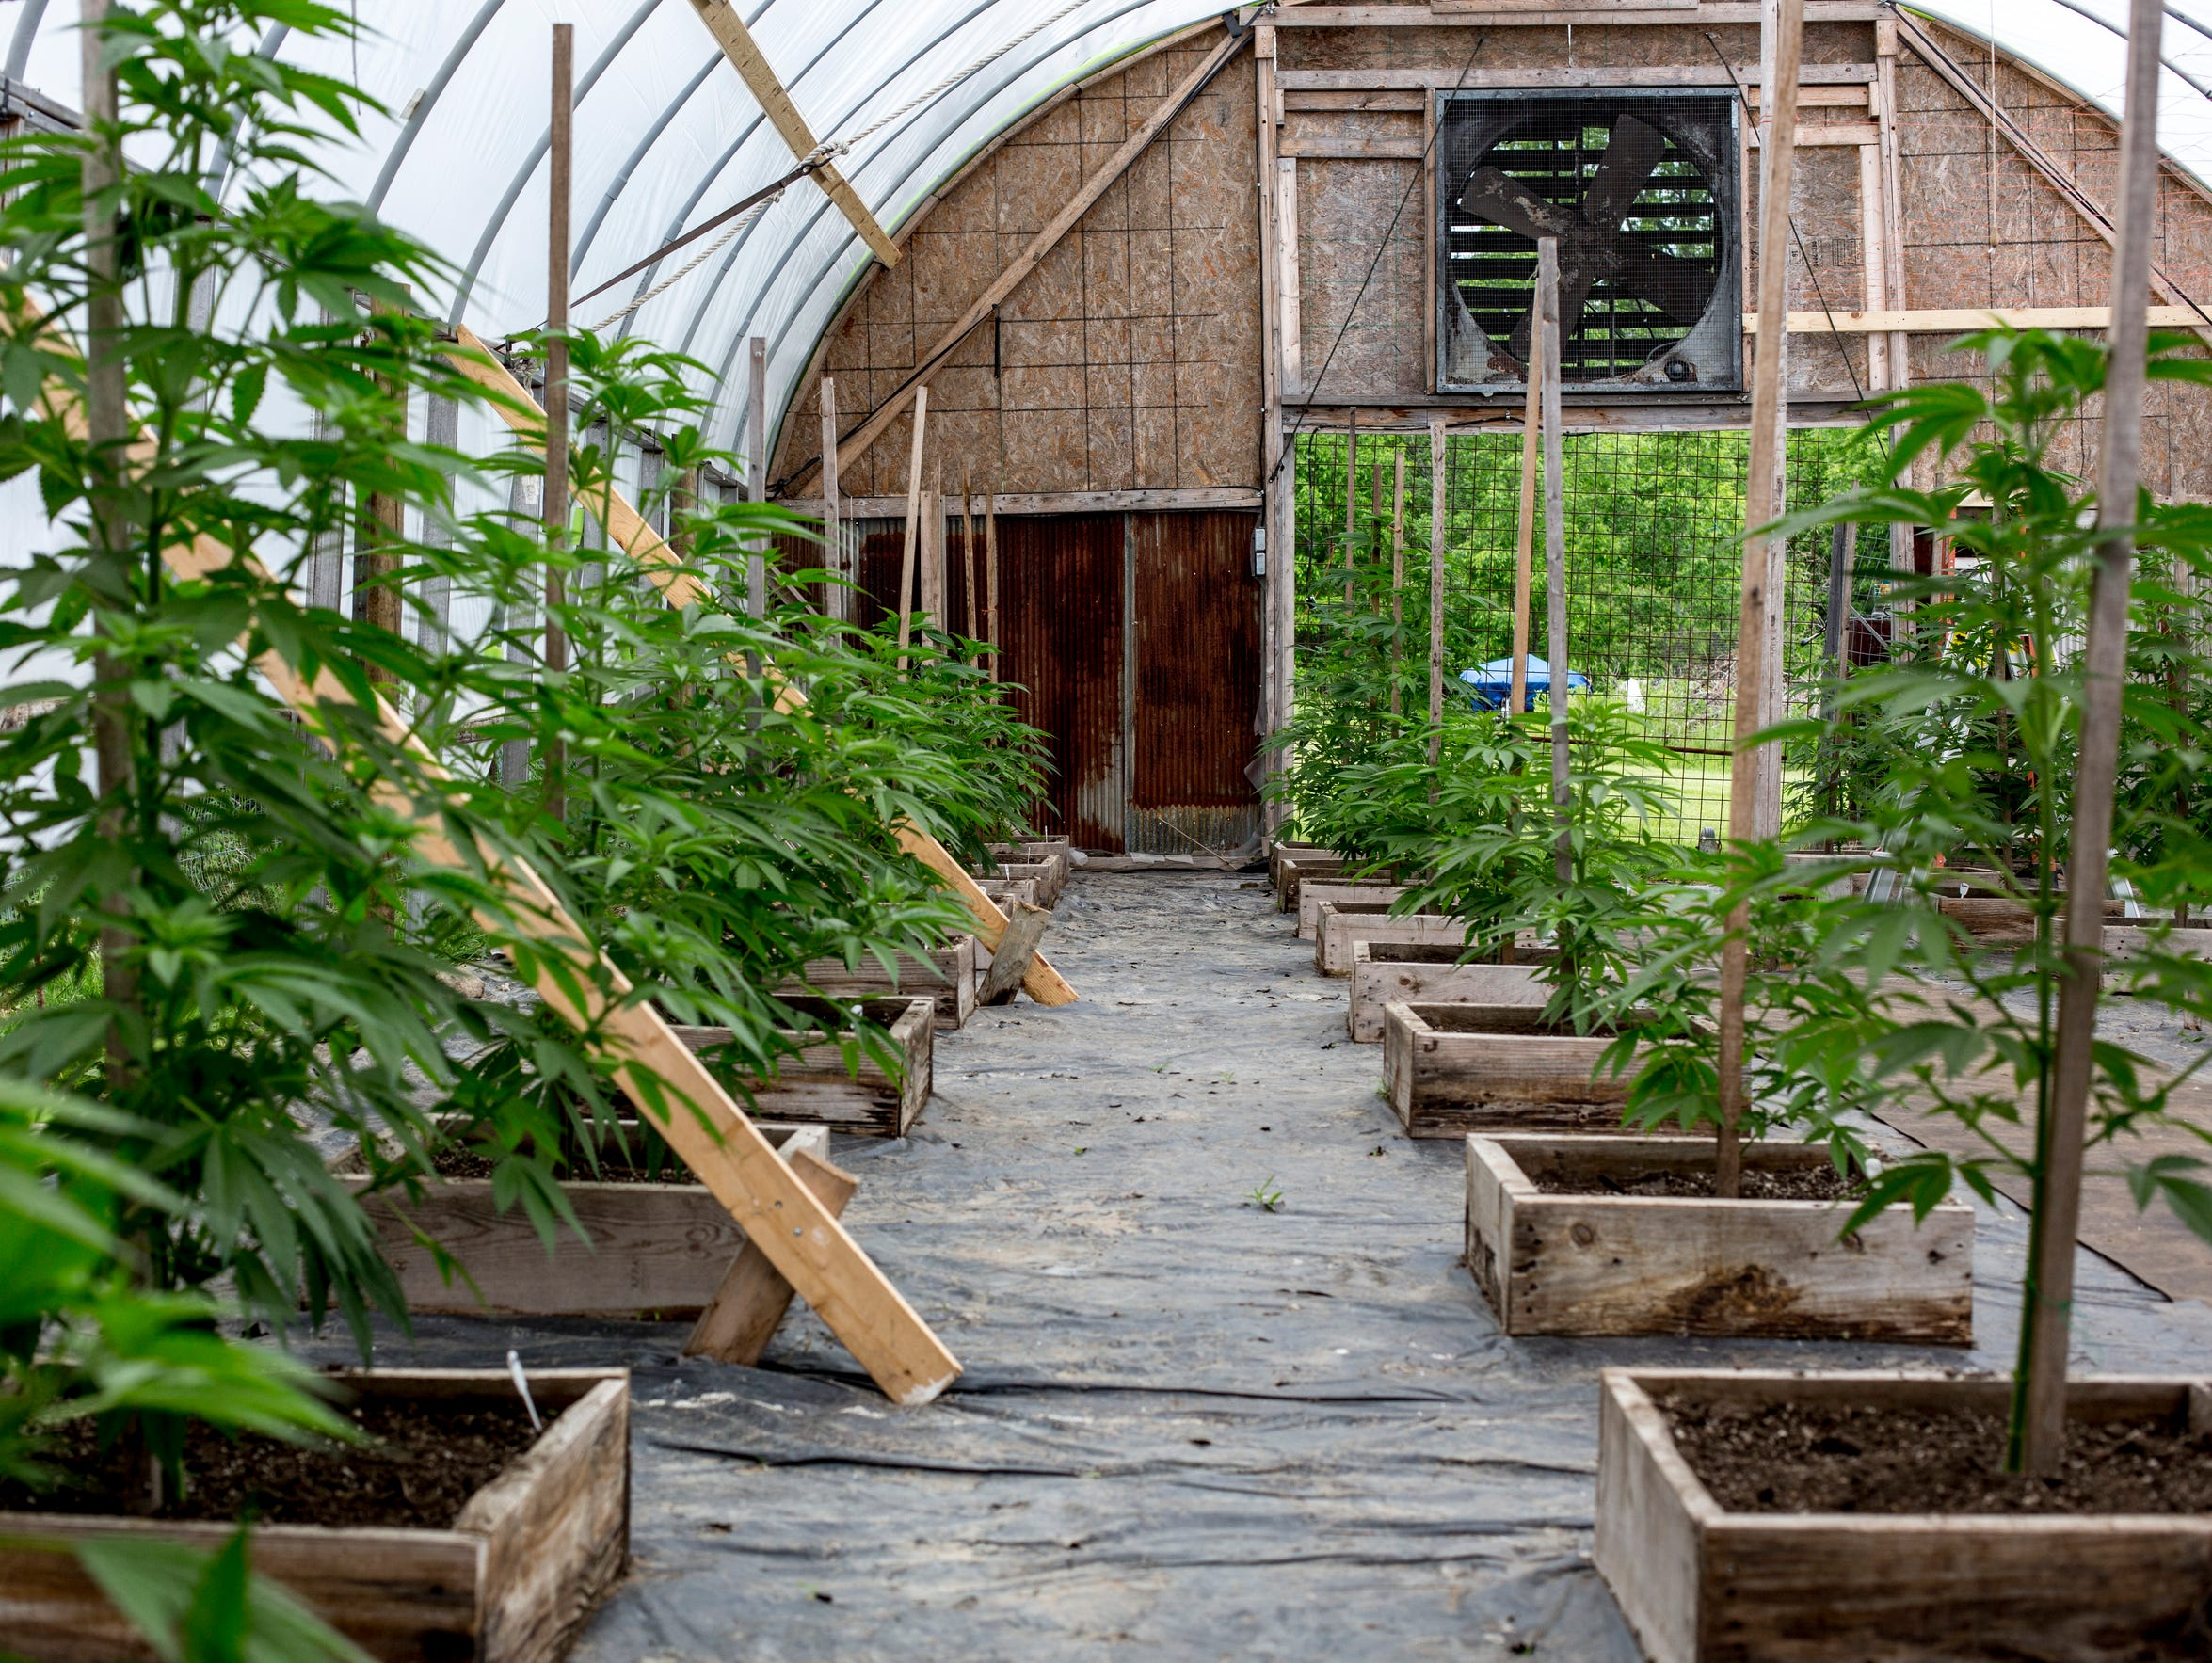 A variety of medical marijuana plants are seen growing